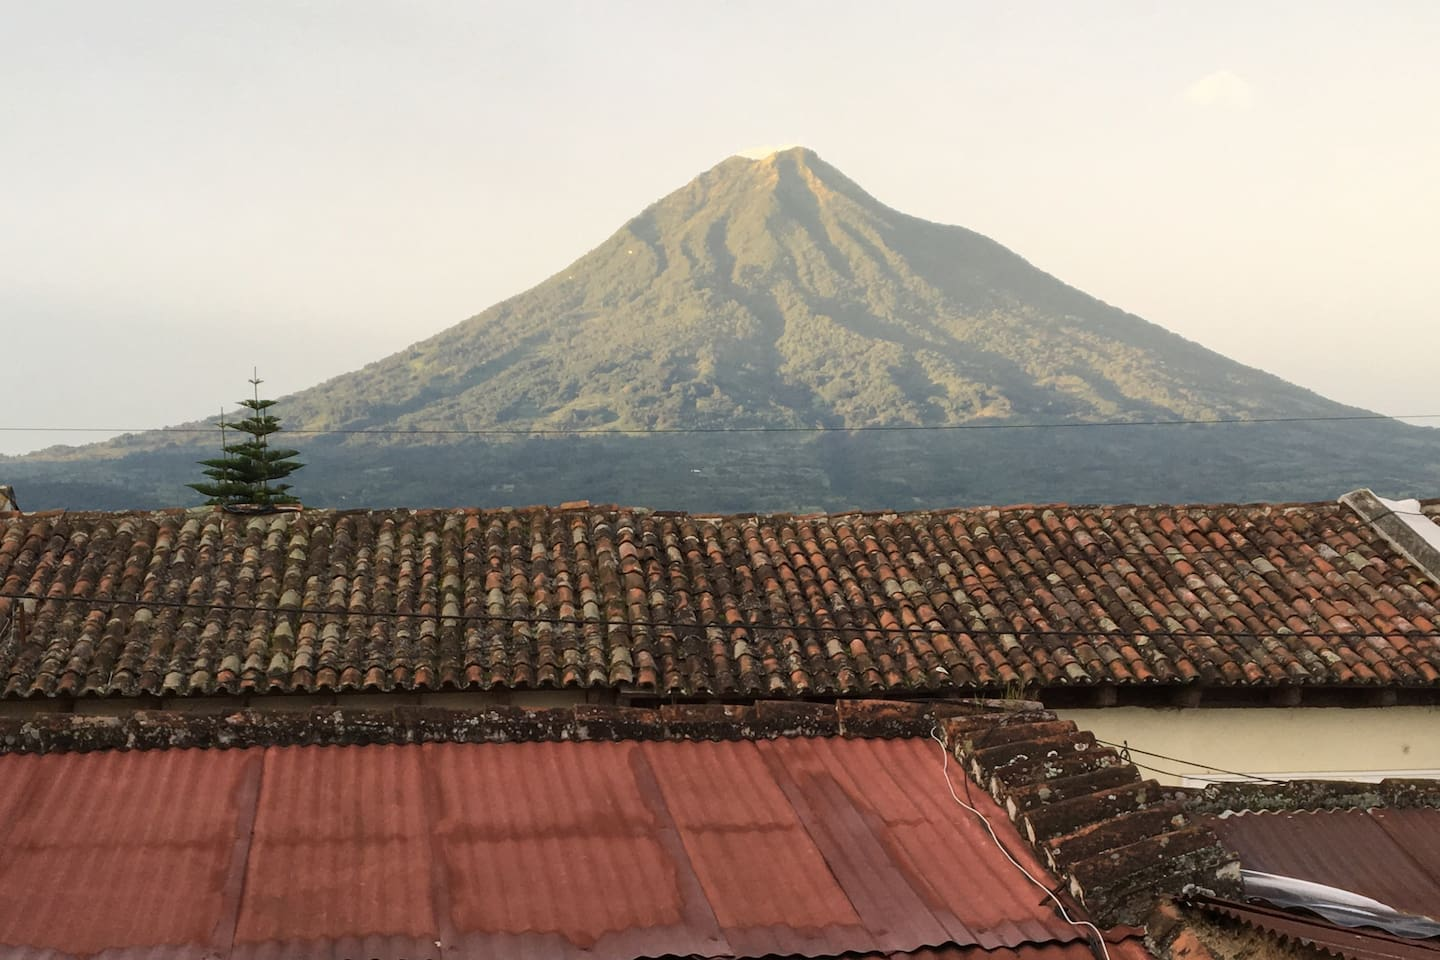 Your view from Main Bedroom — every morning the Volcano greeting